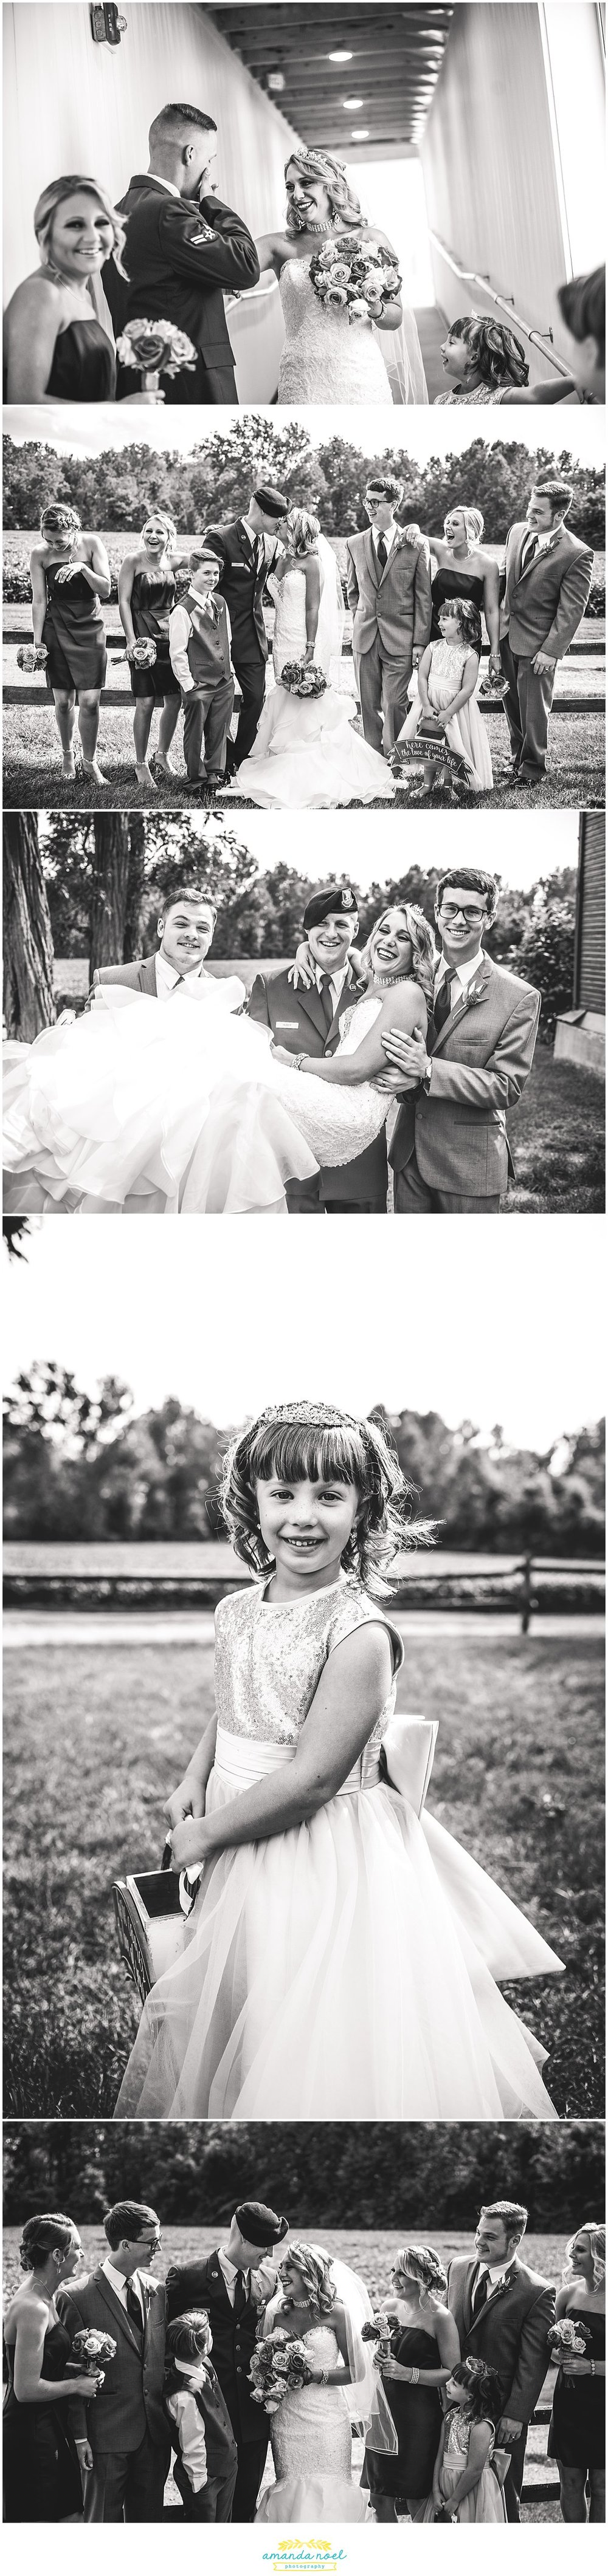 Springfield Ohio wedding party portraits black and white